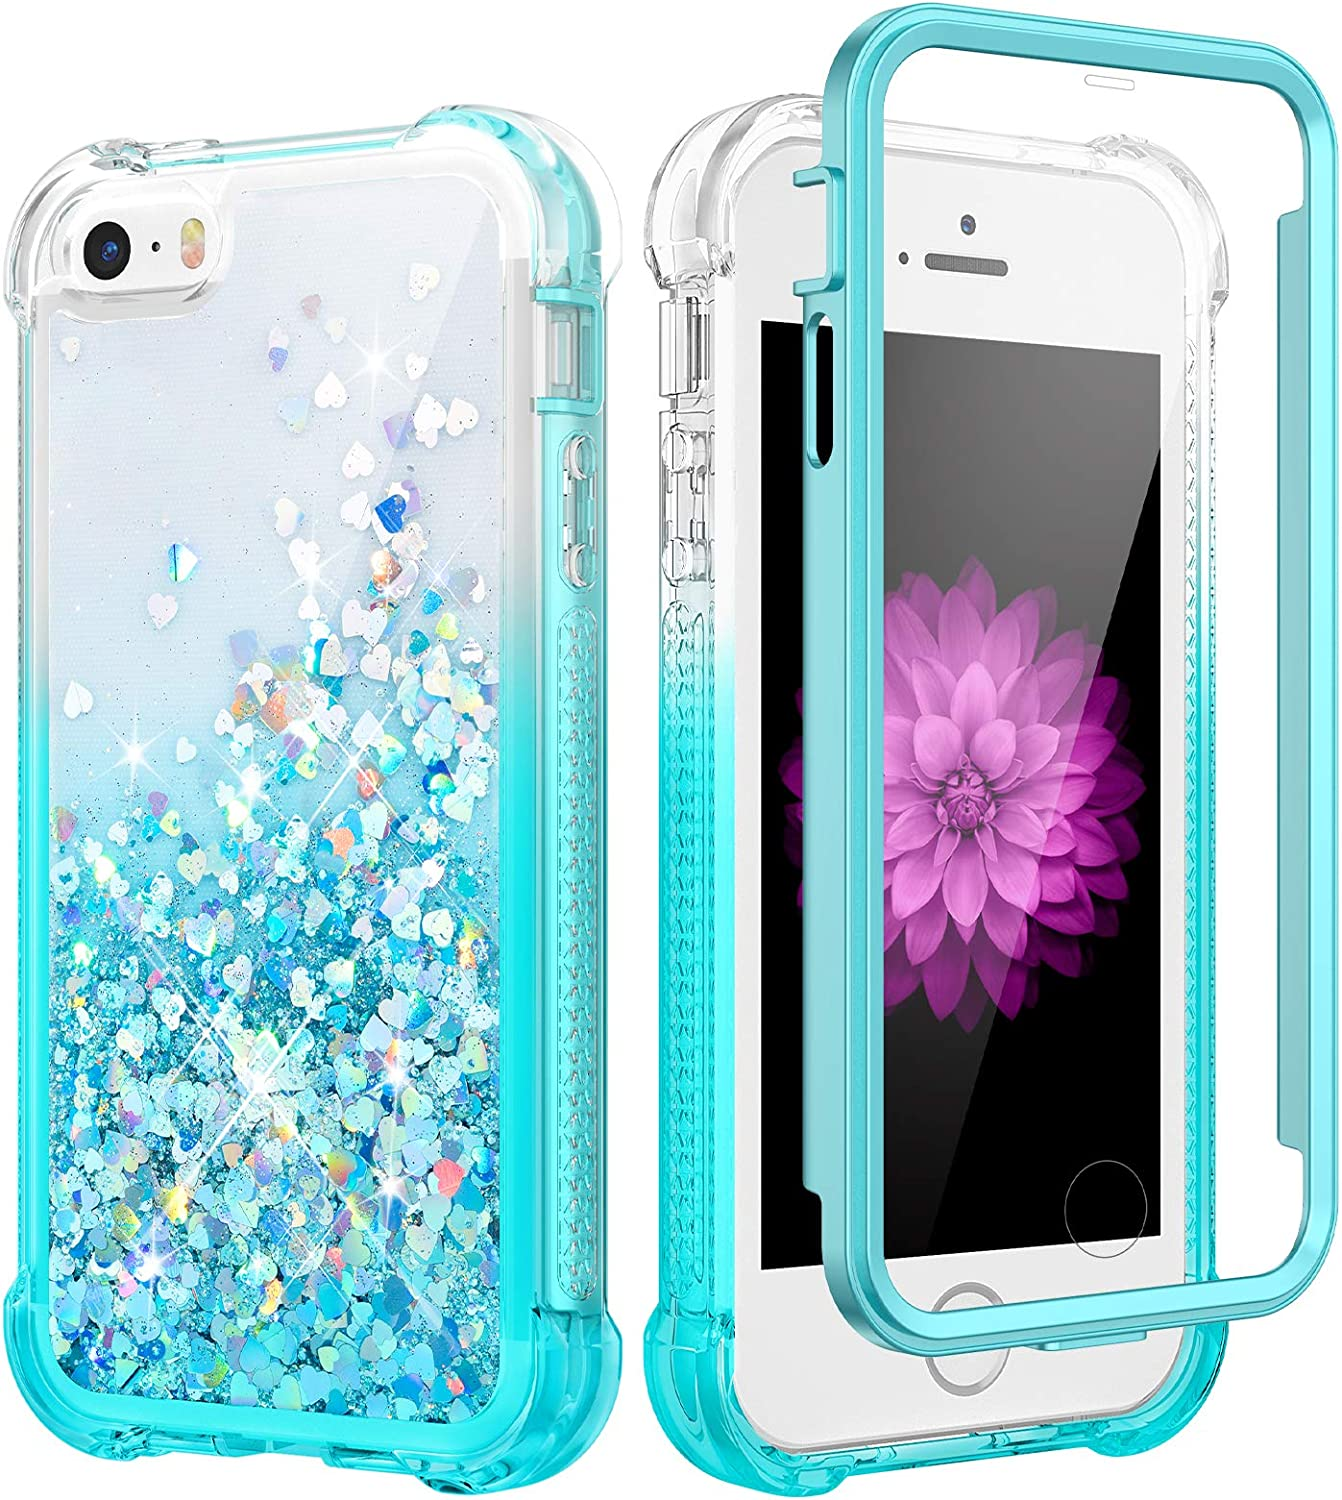 Caka Case for iPhone SE 2016, iPhone 5 5S SE Glitter Case Girly Girls Women Full Body Bling Liquid Sparkle Fashion Flowing Quicksand Shockproof Gradient Case for iPhone 5 5S SE 2016 (Gradient Teal)